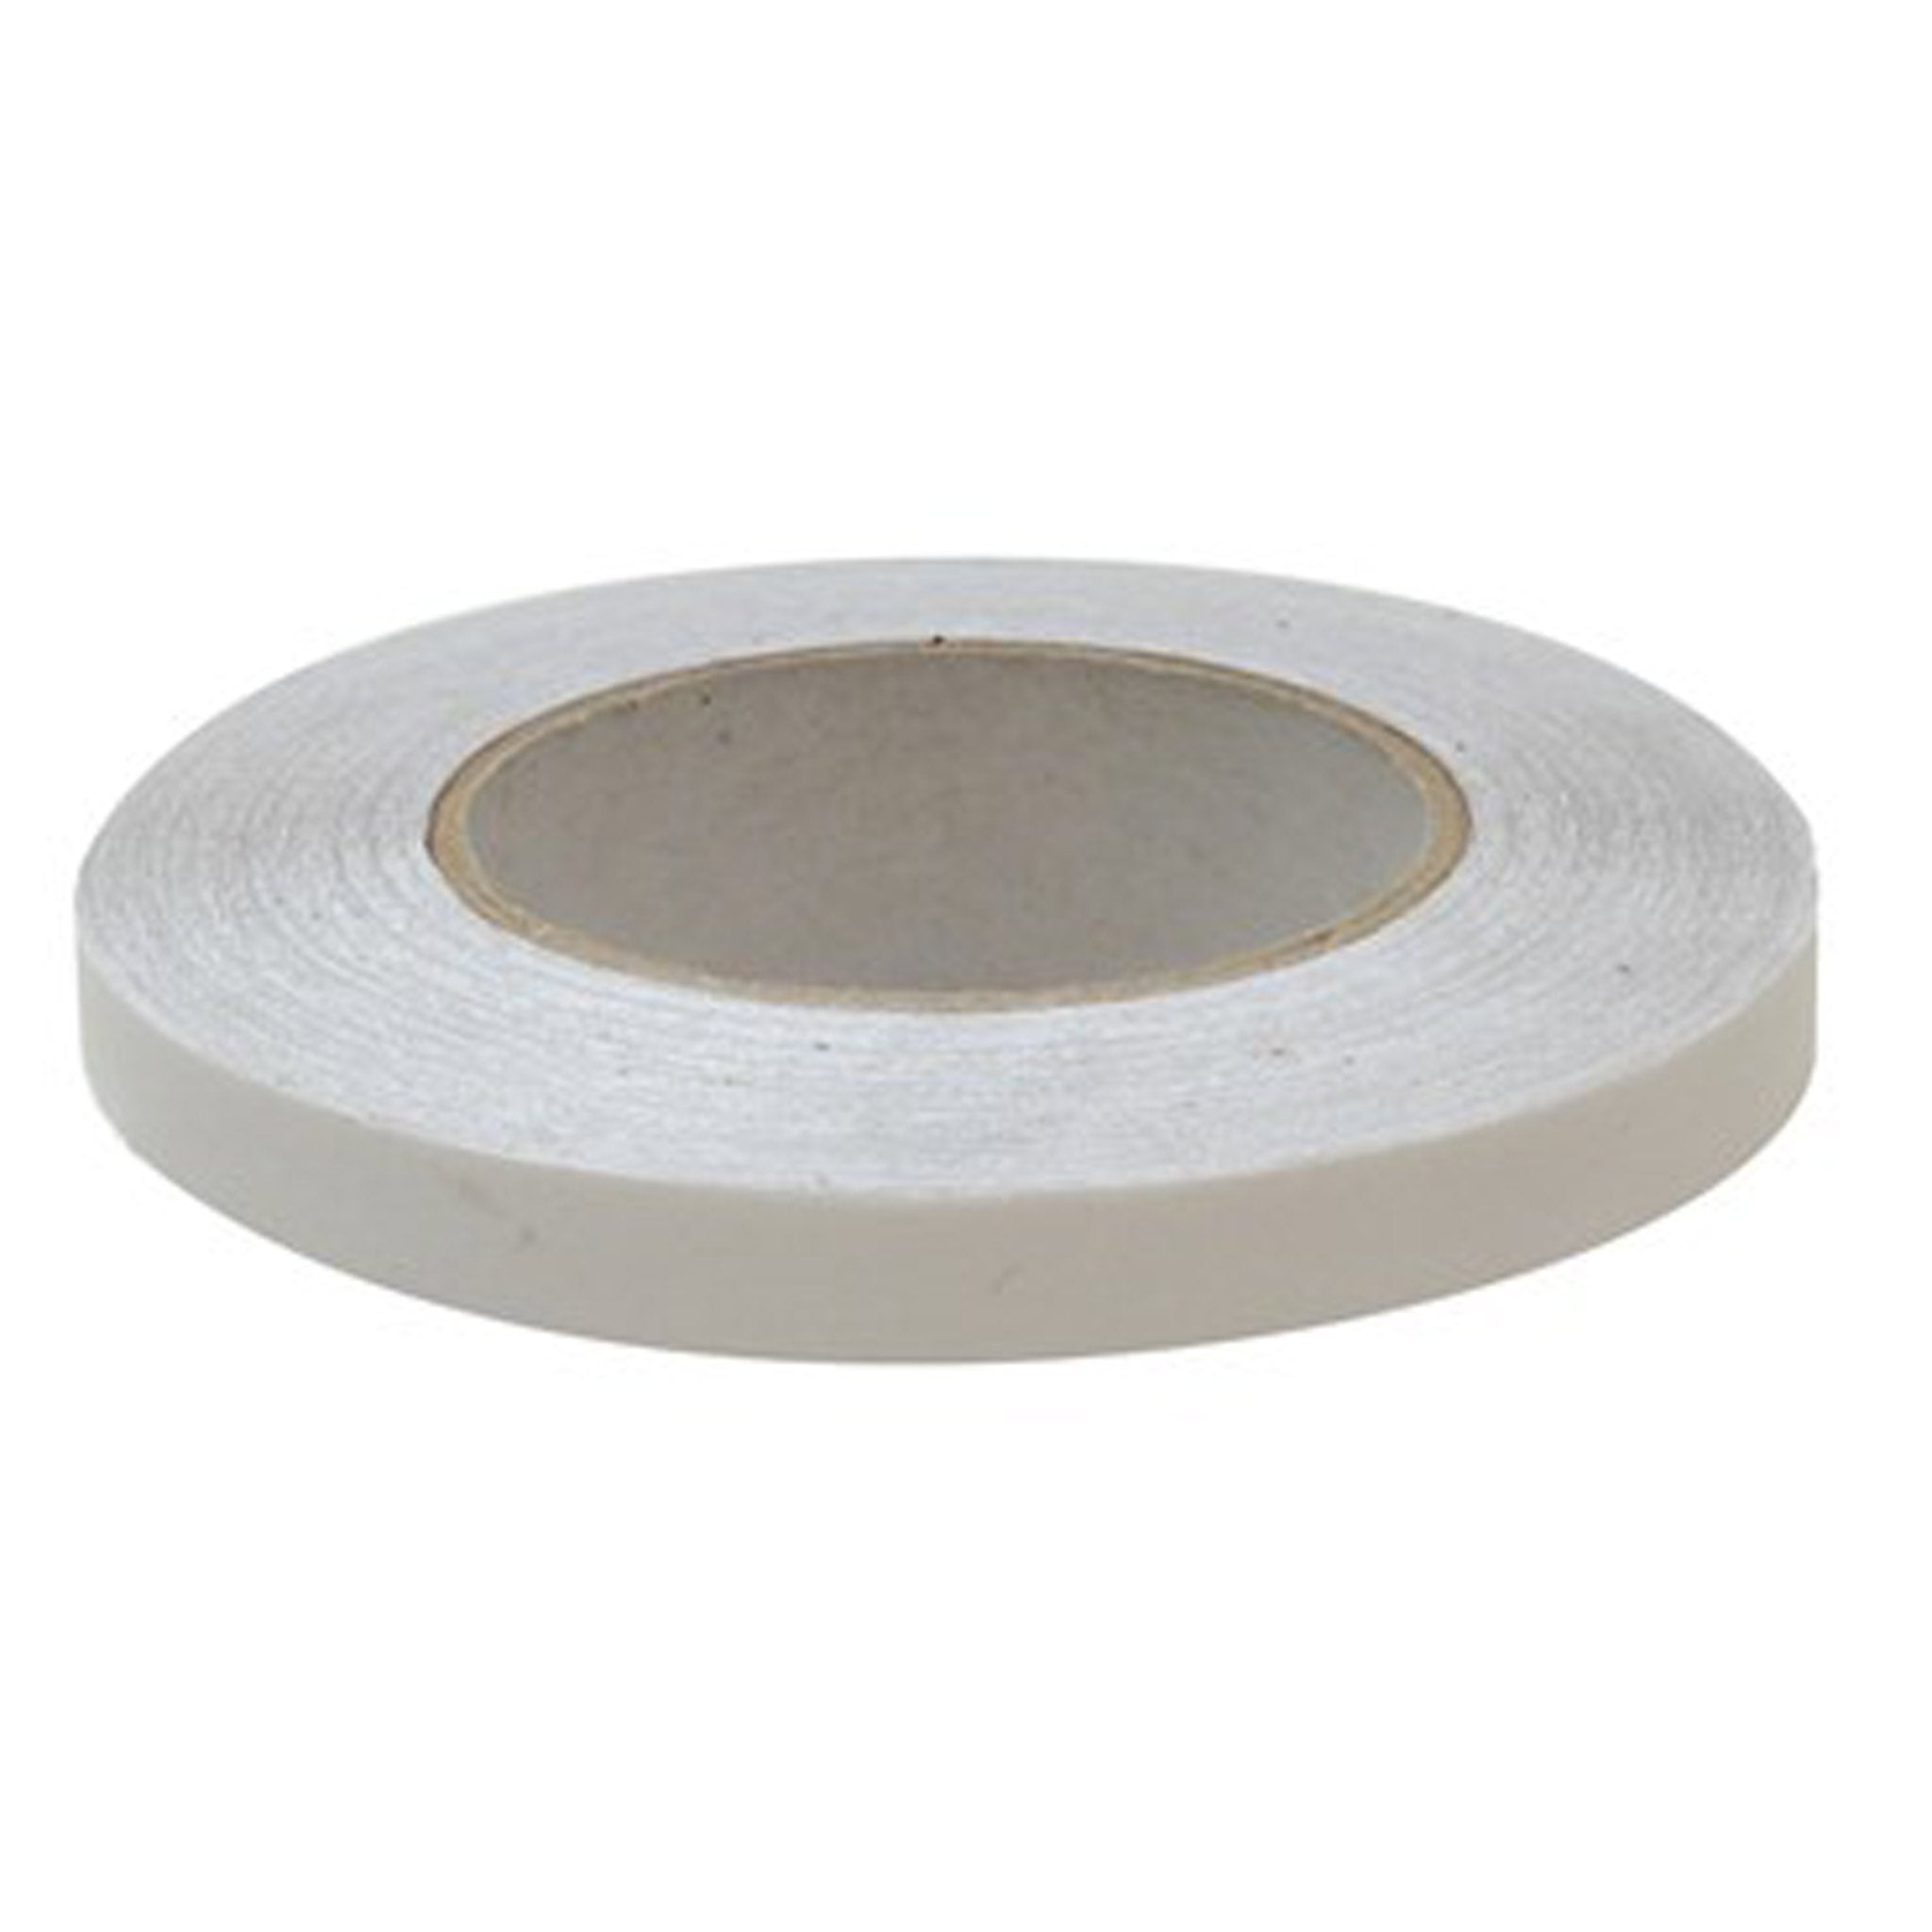 Double Sided Tape Medium Tack - 12.5 mm - Arthur Beale